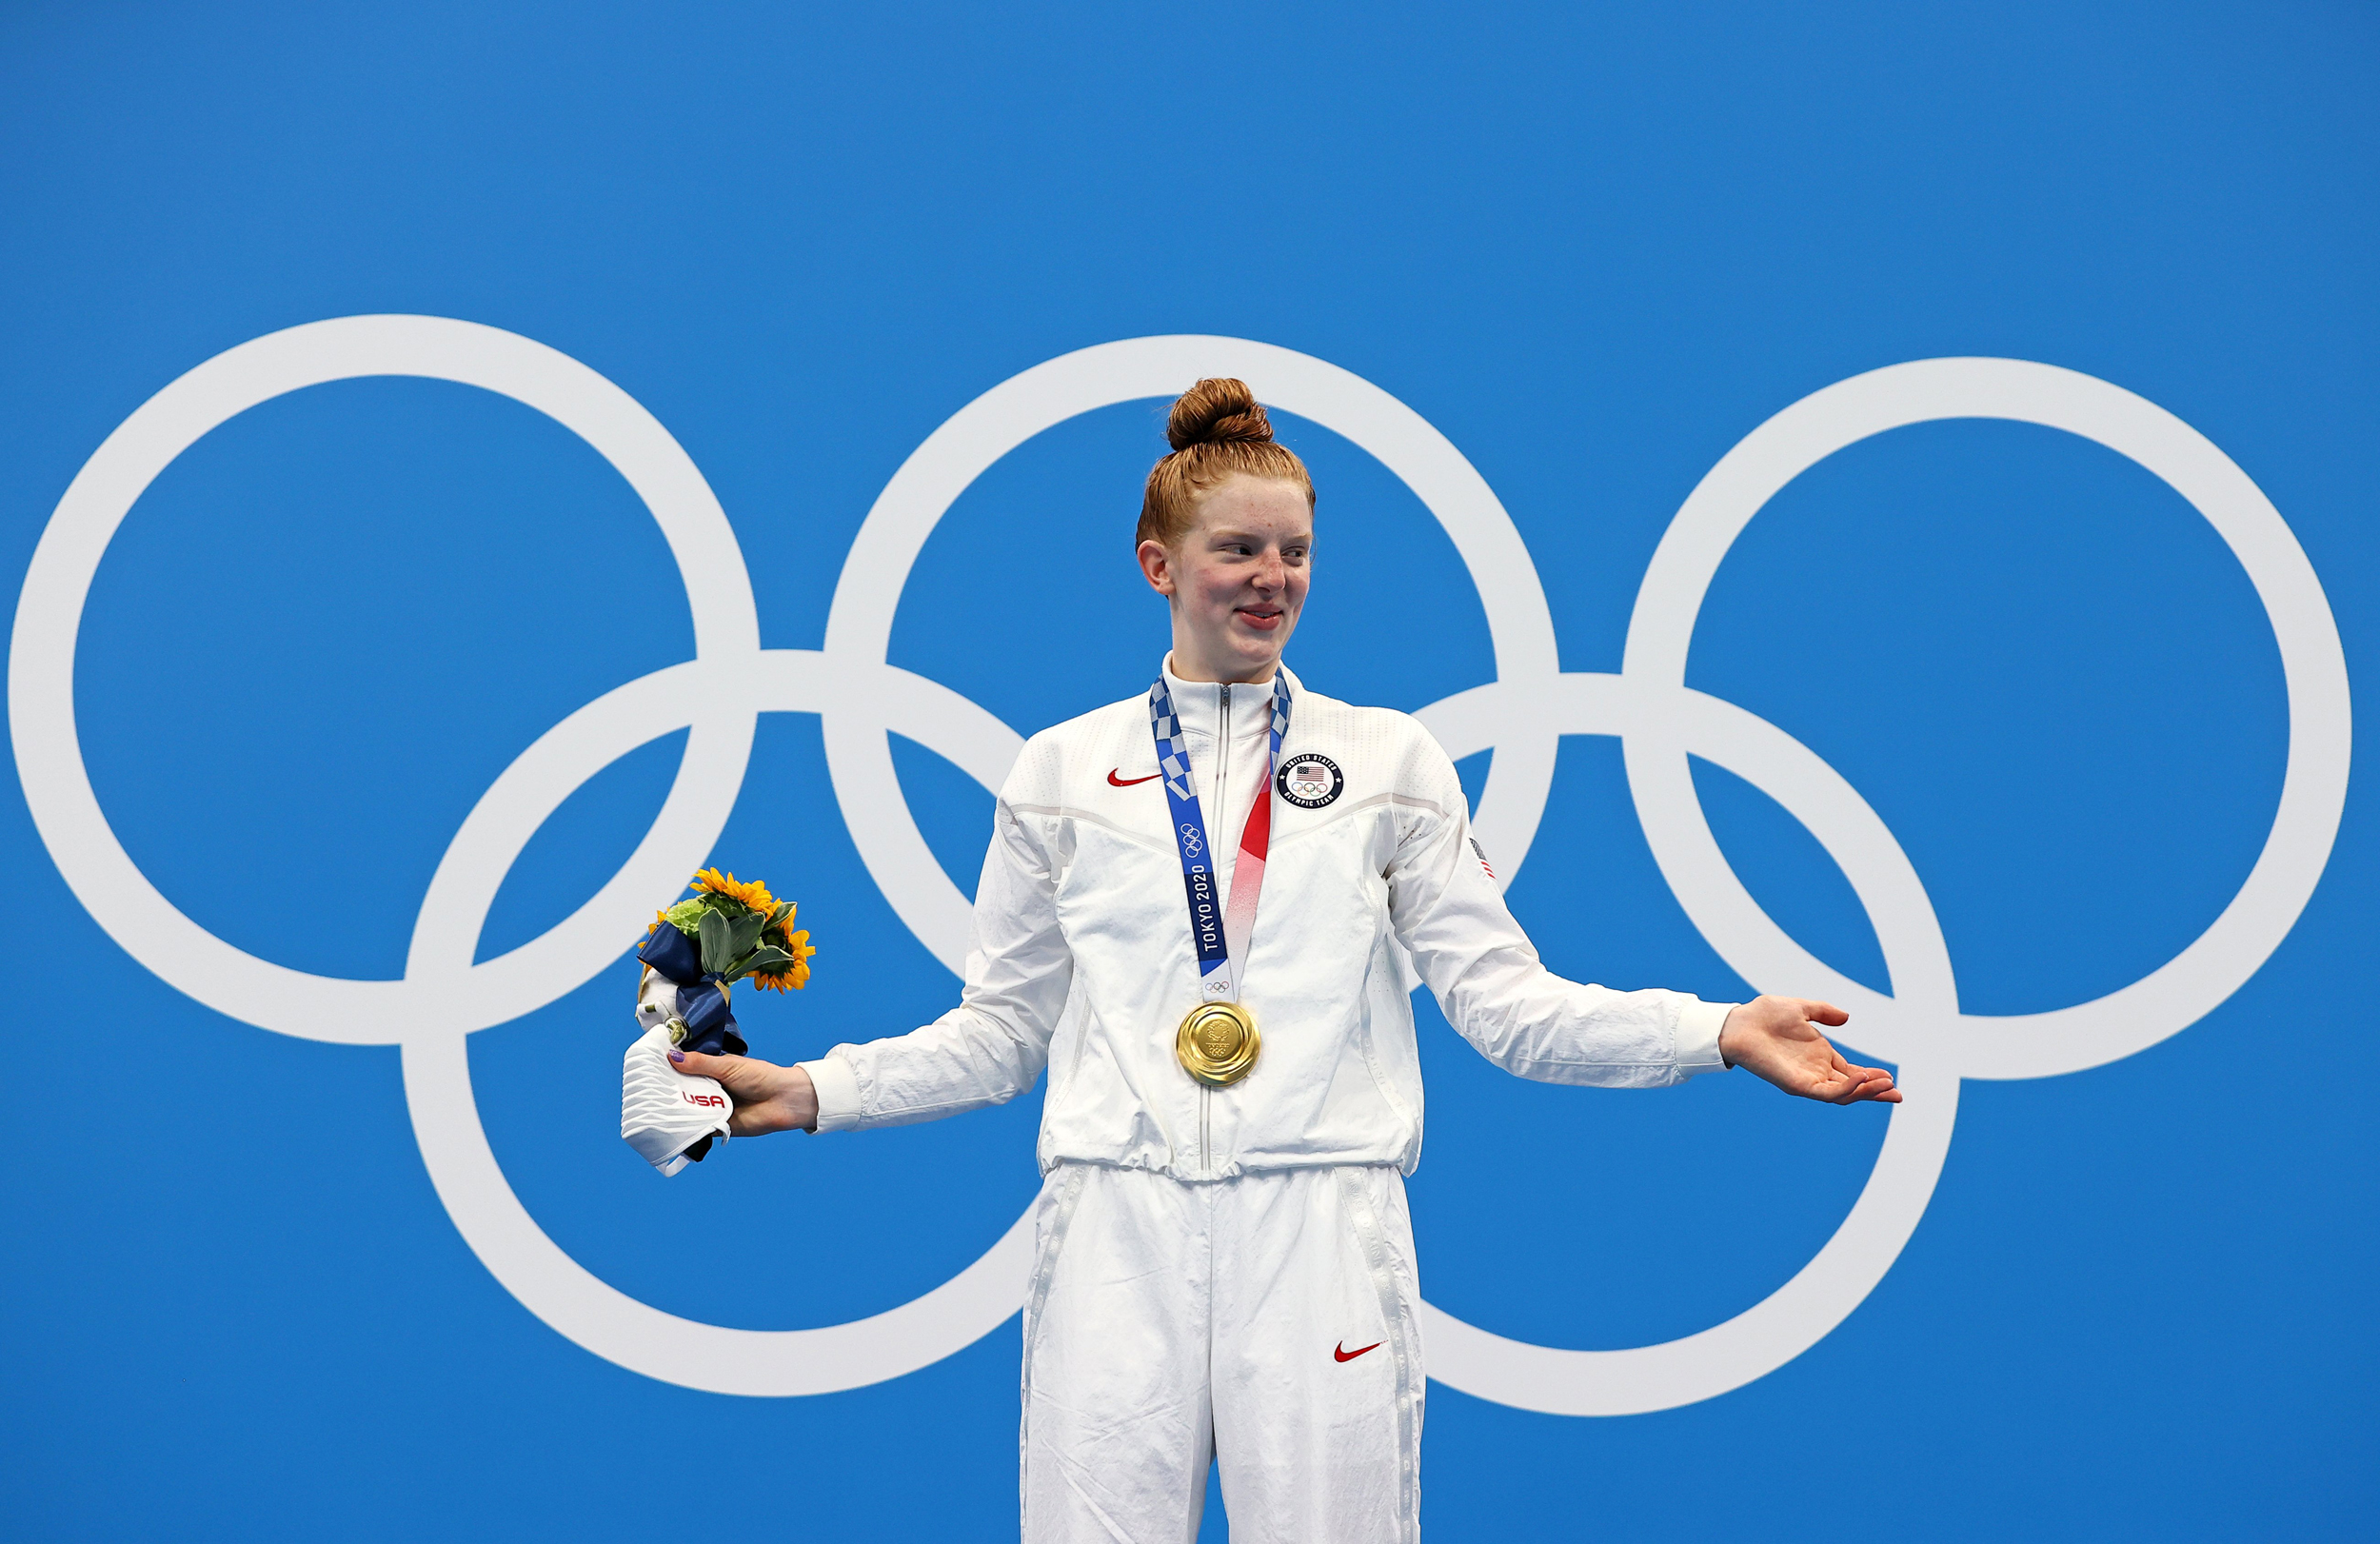 They joked she trained with the whales. Then, Alaska teen went to Tokyo and won Olympic gold.